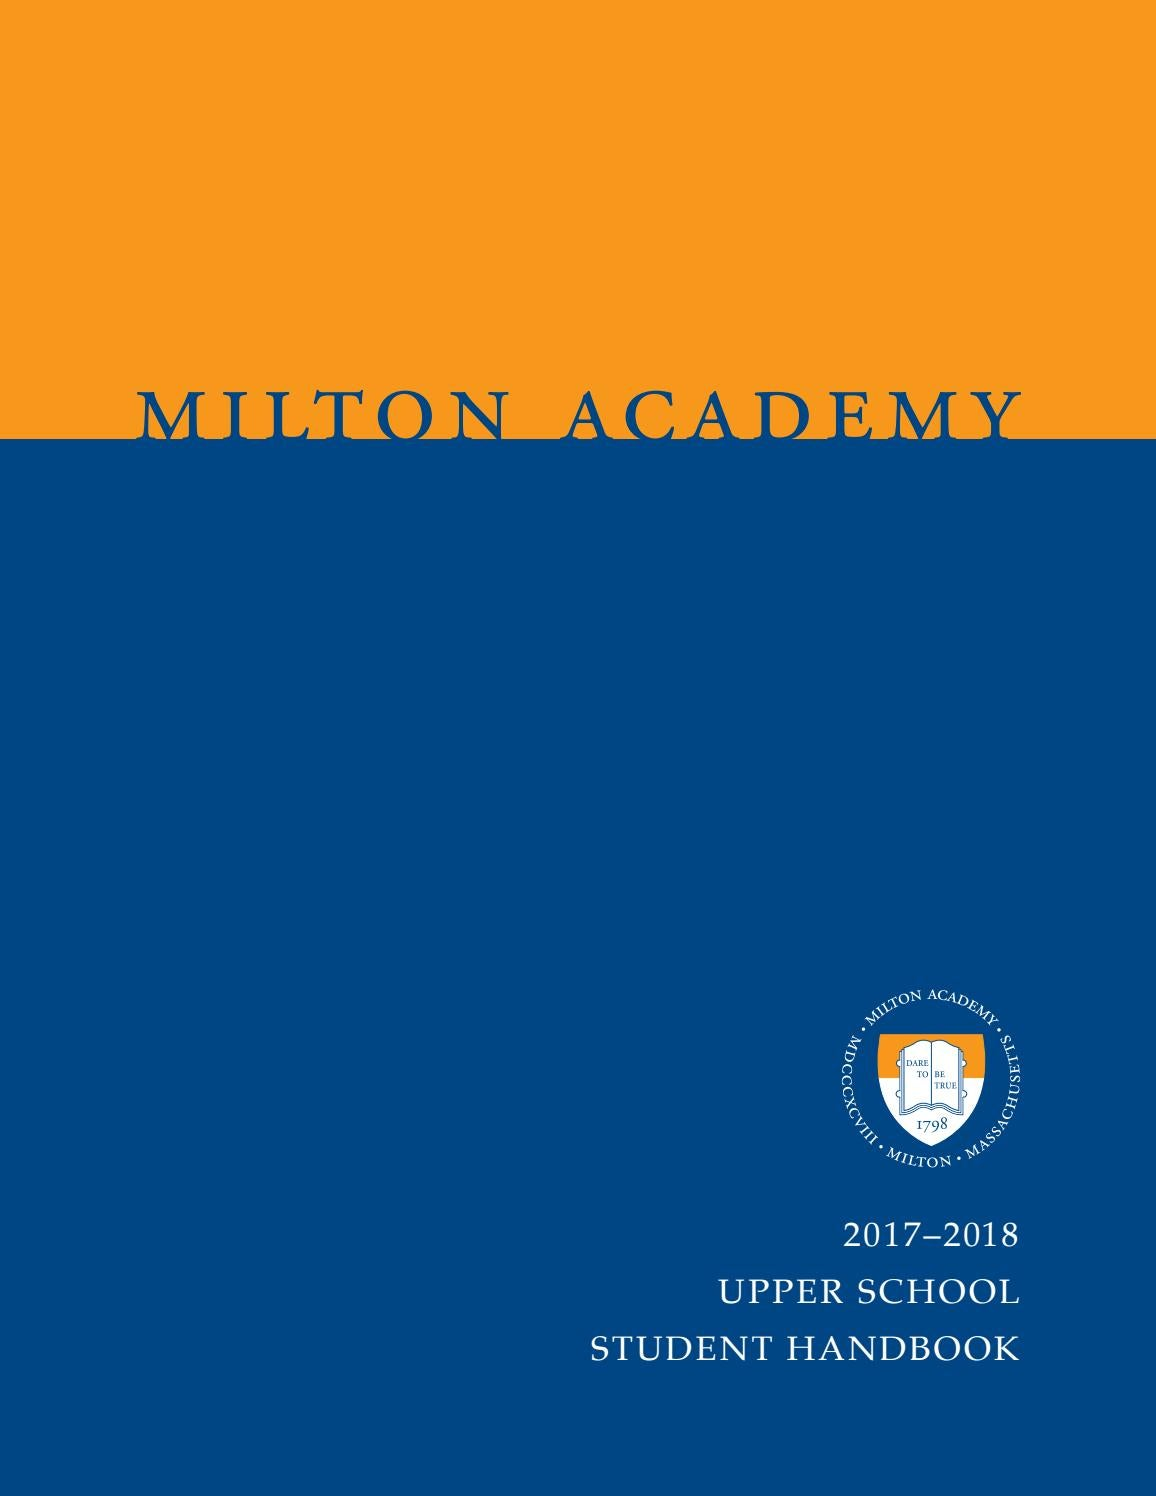 Upper School Handbook 2017–2018 by Milton Academy - issuu